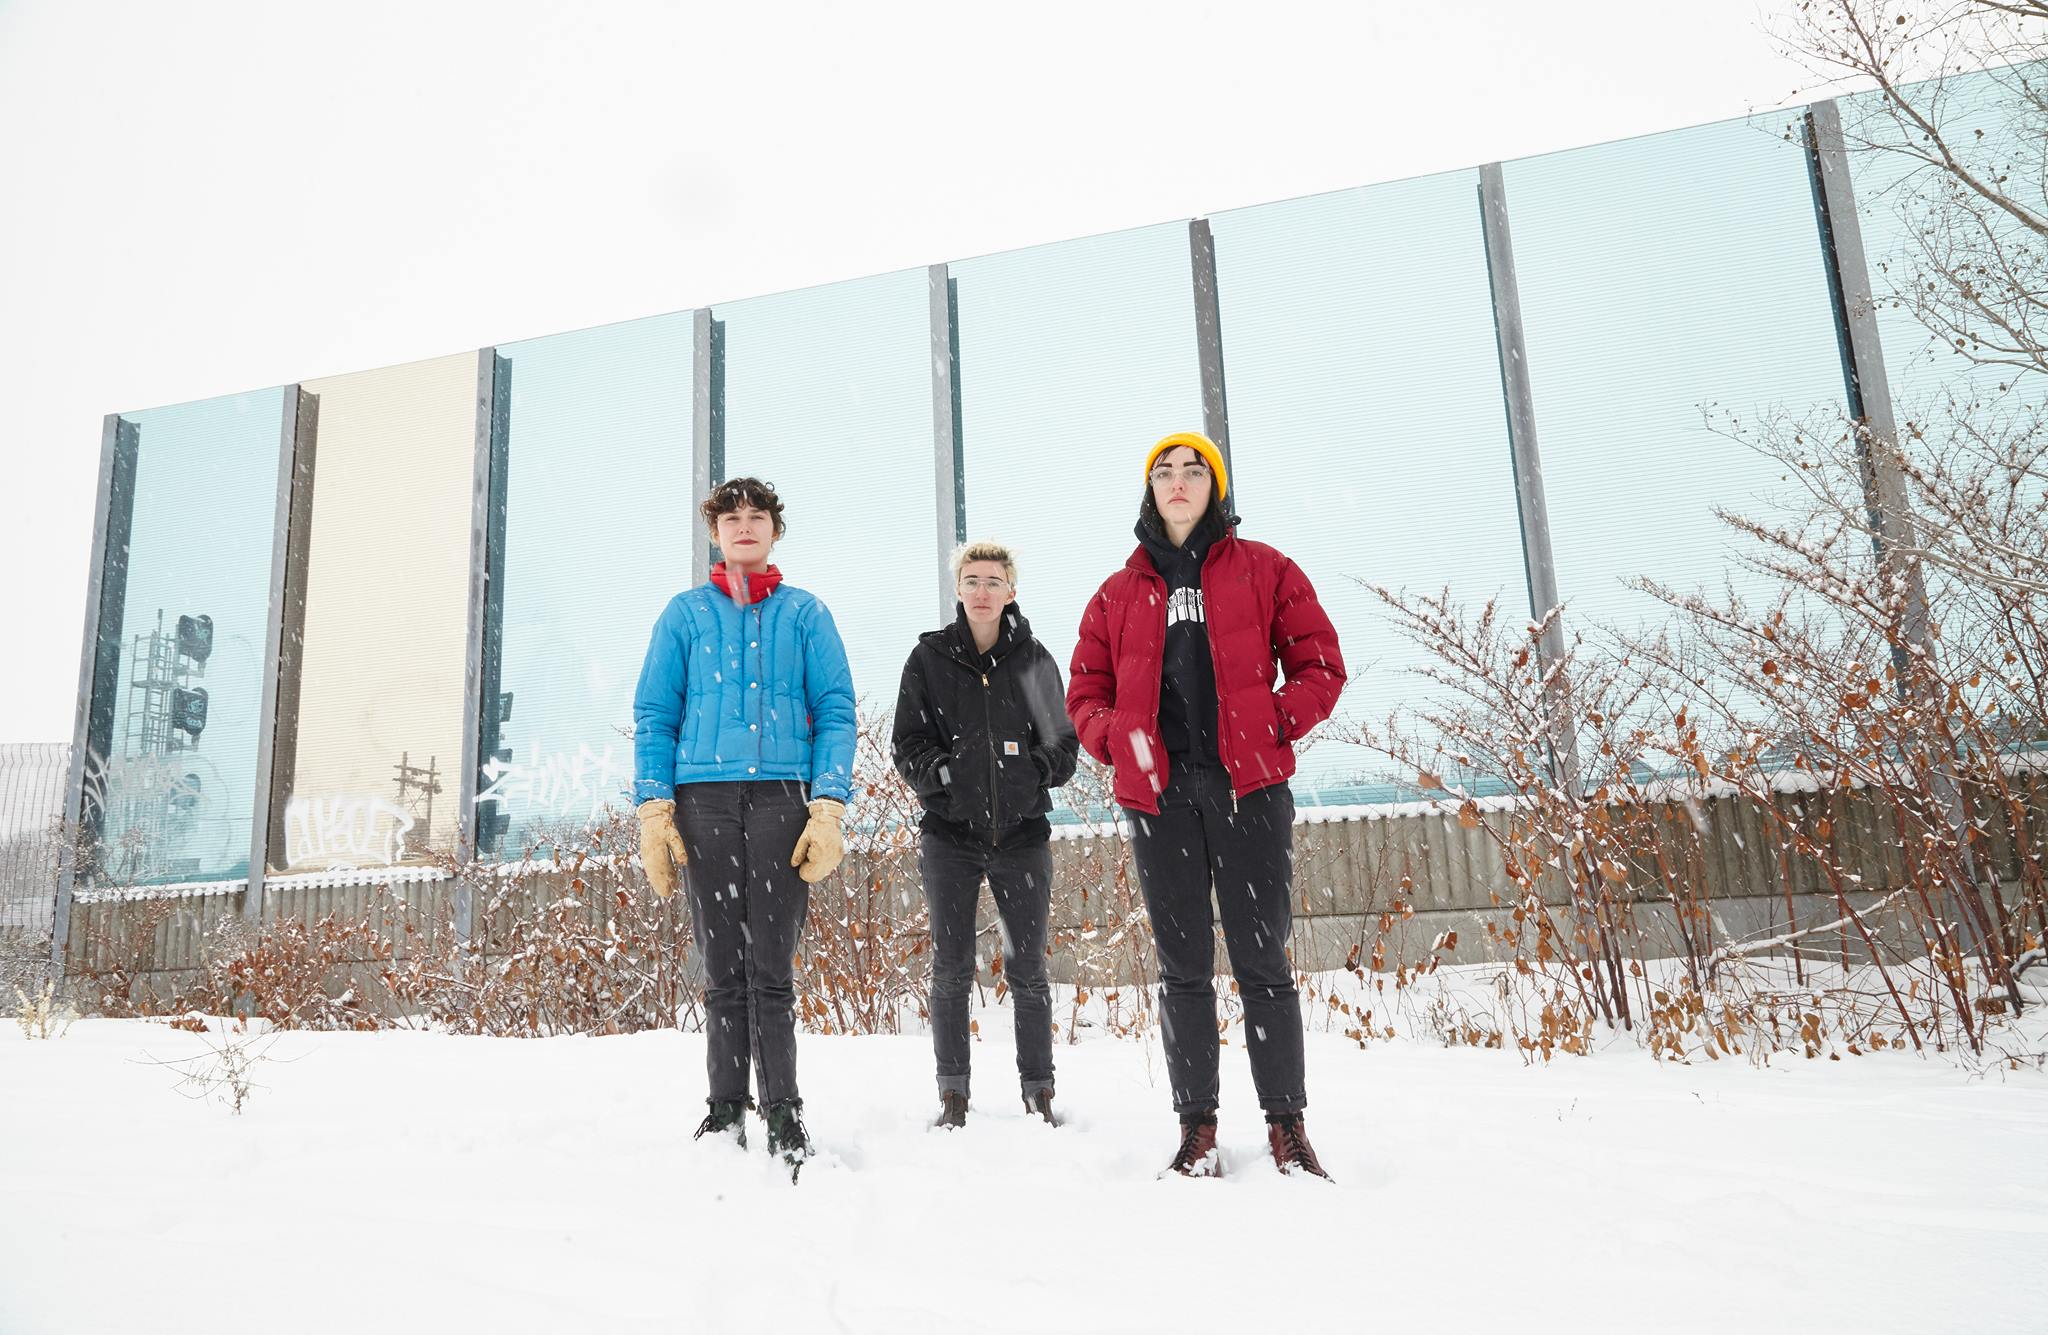 lonely parade interview on city slang